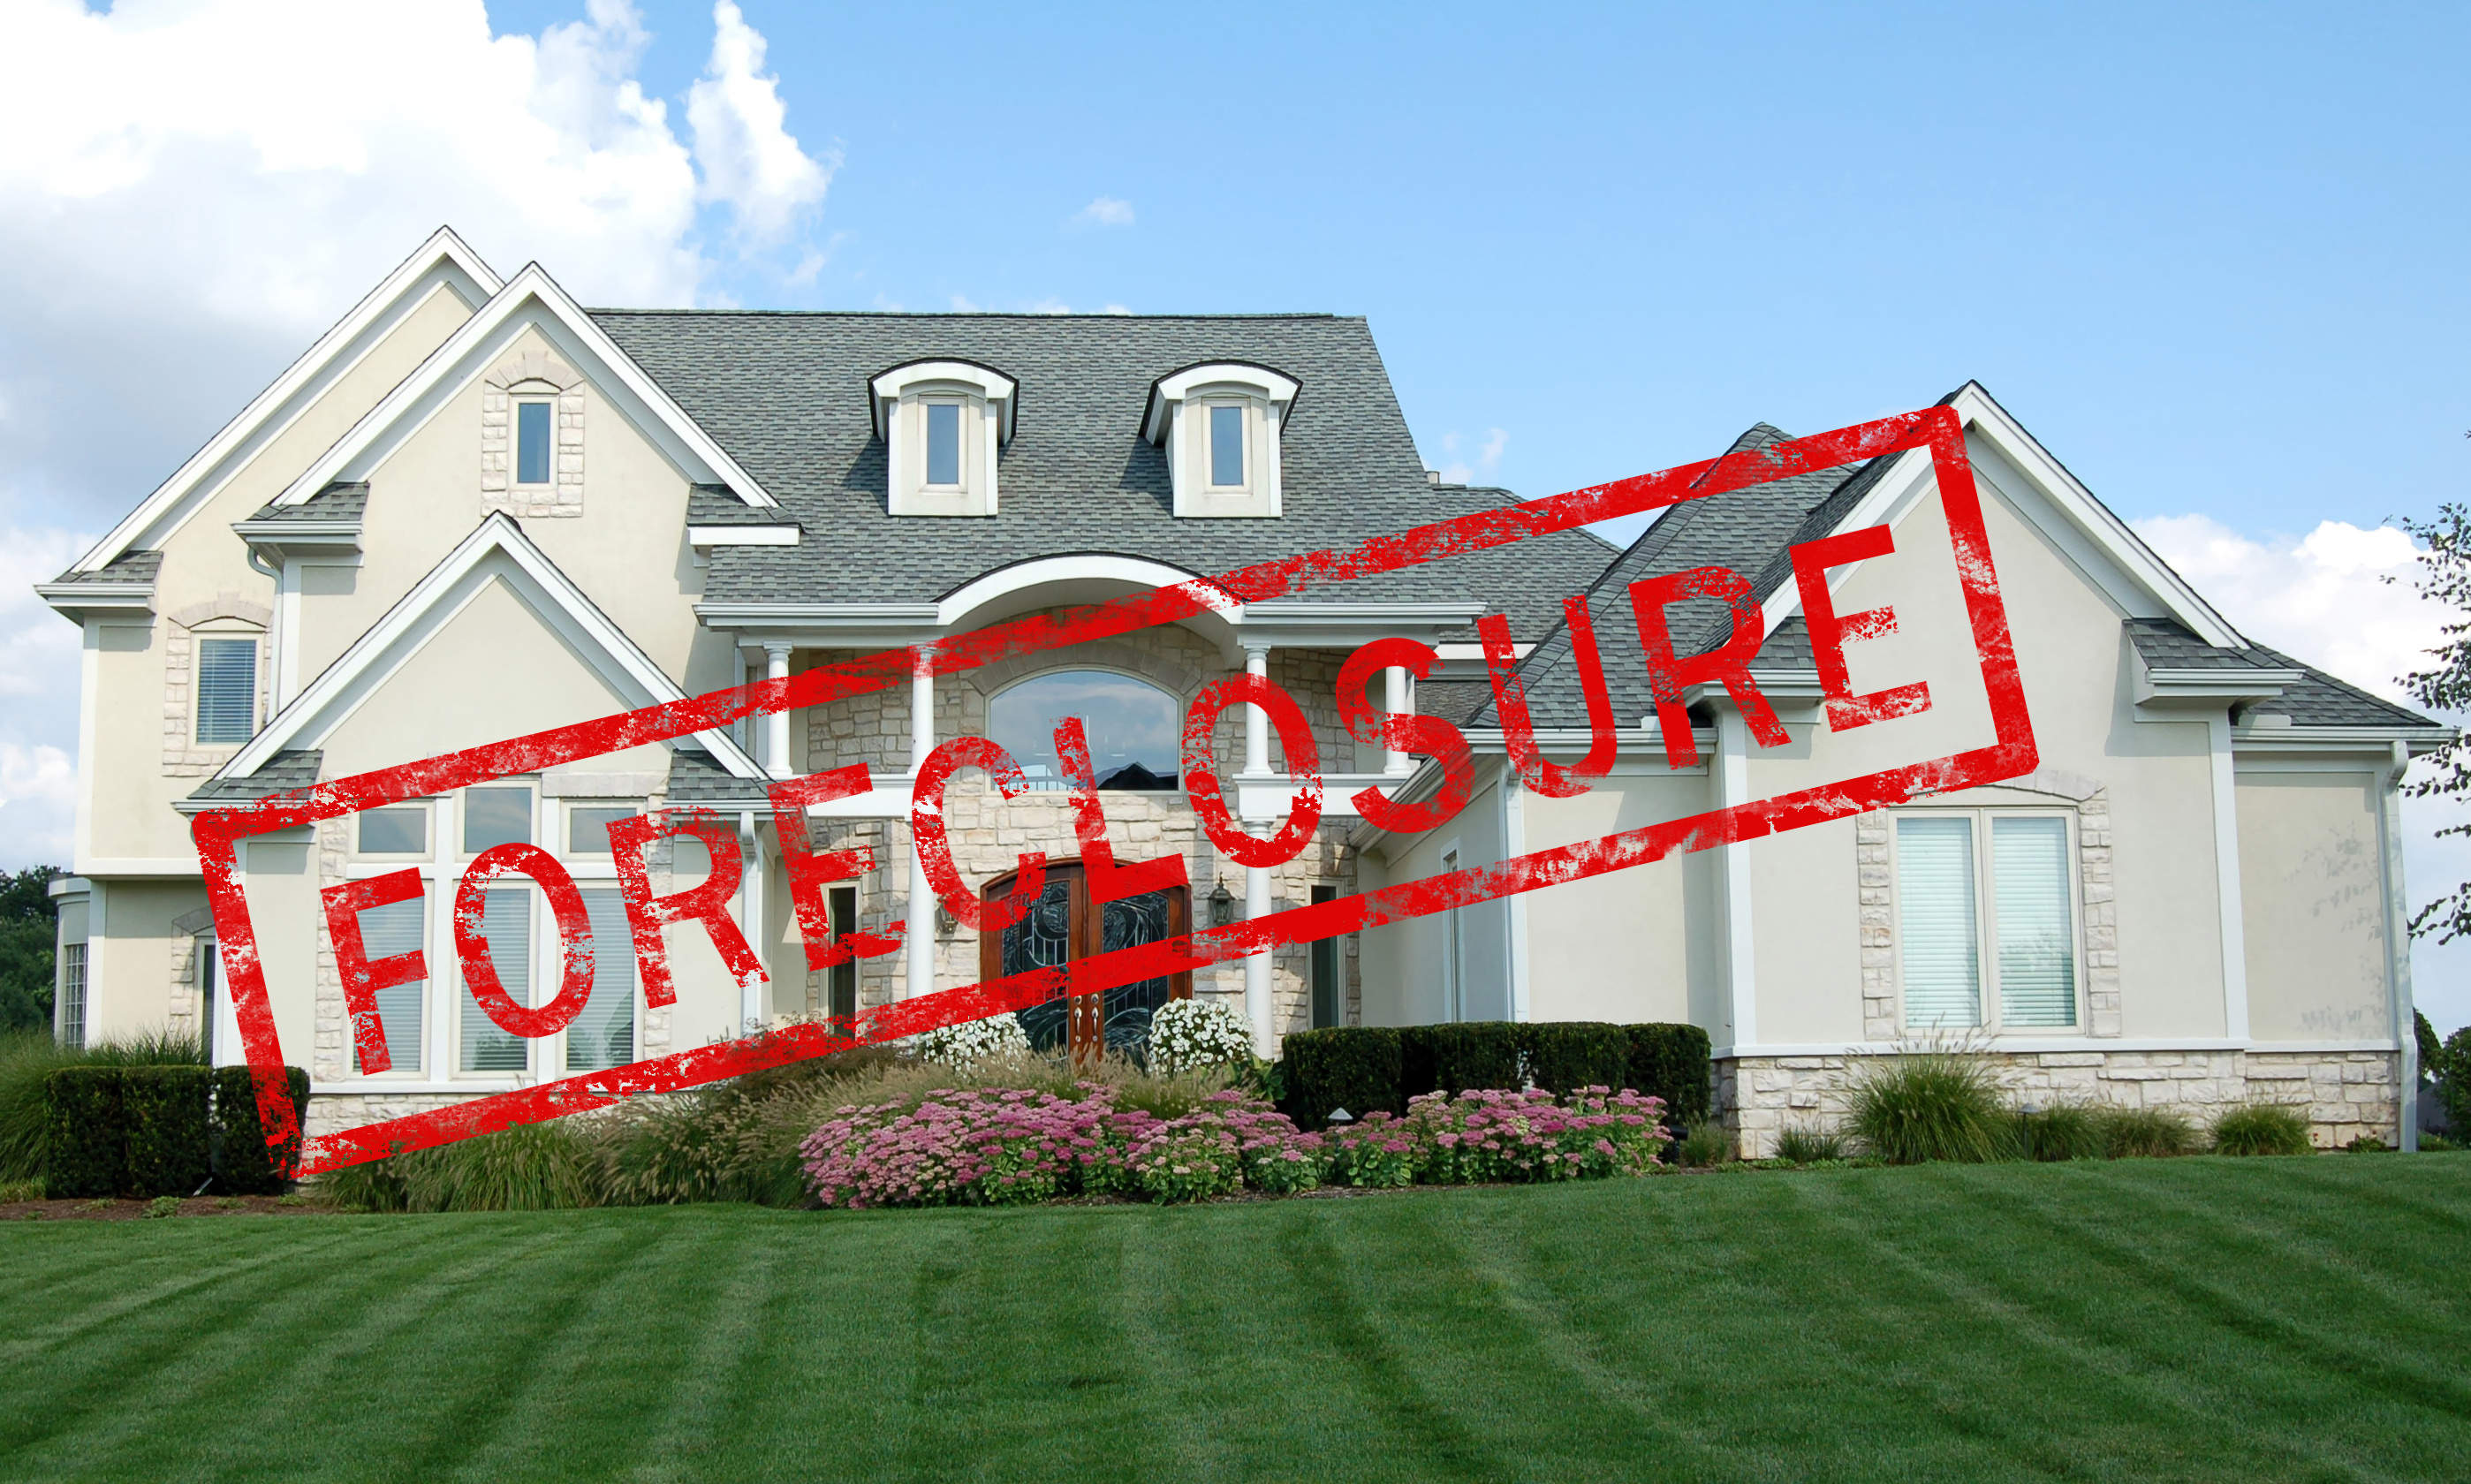 Call MacBride Appraisal when you need appraisals for San Diego foreclosures